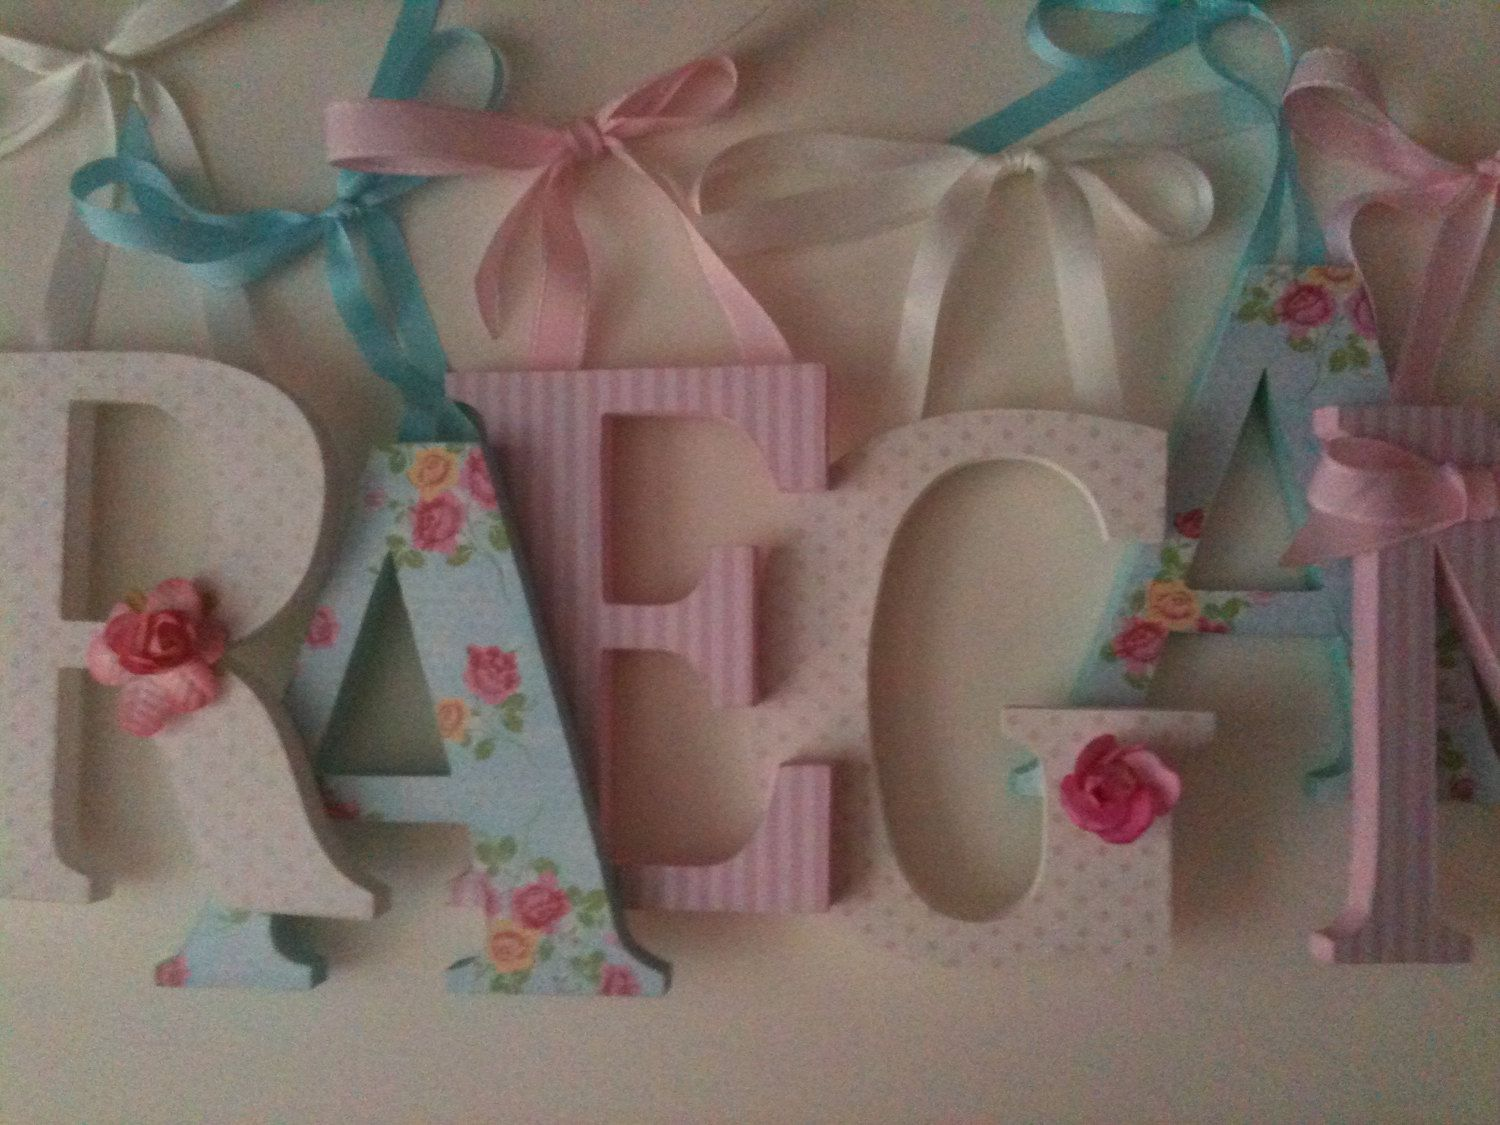 wooden letters for nursery in pinkwhite and blue